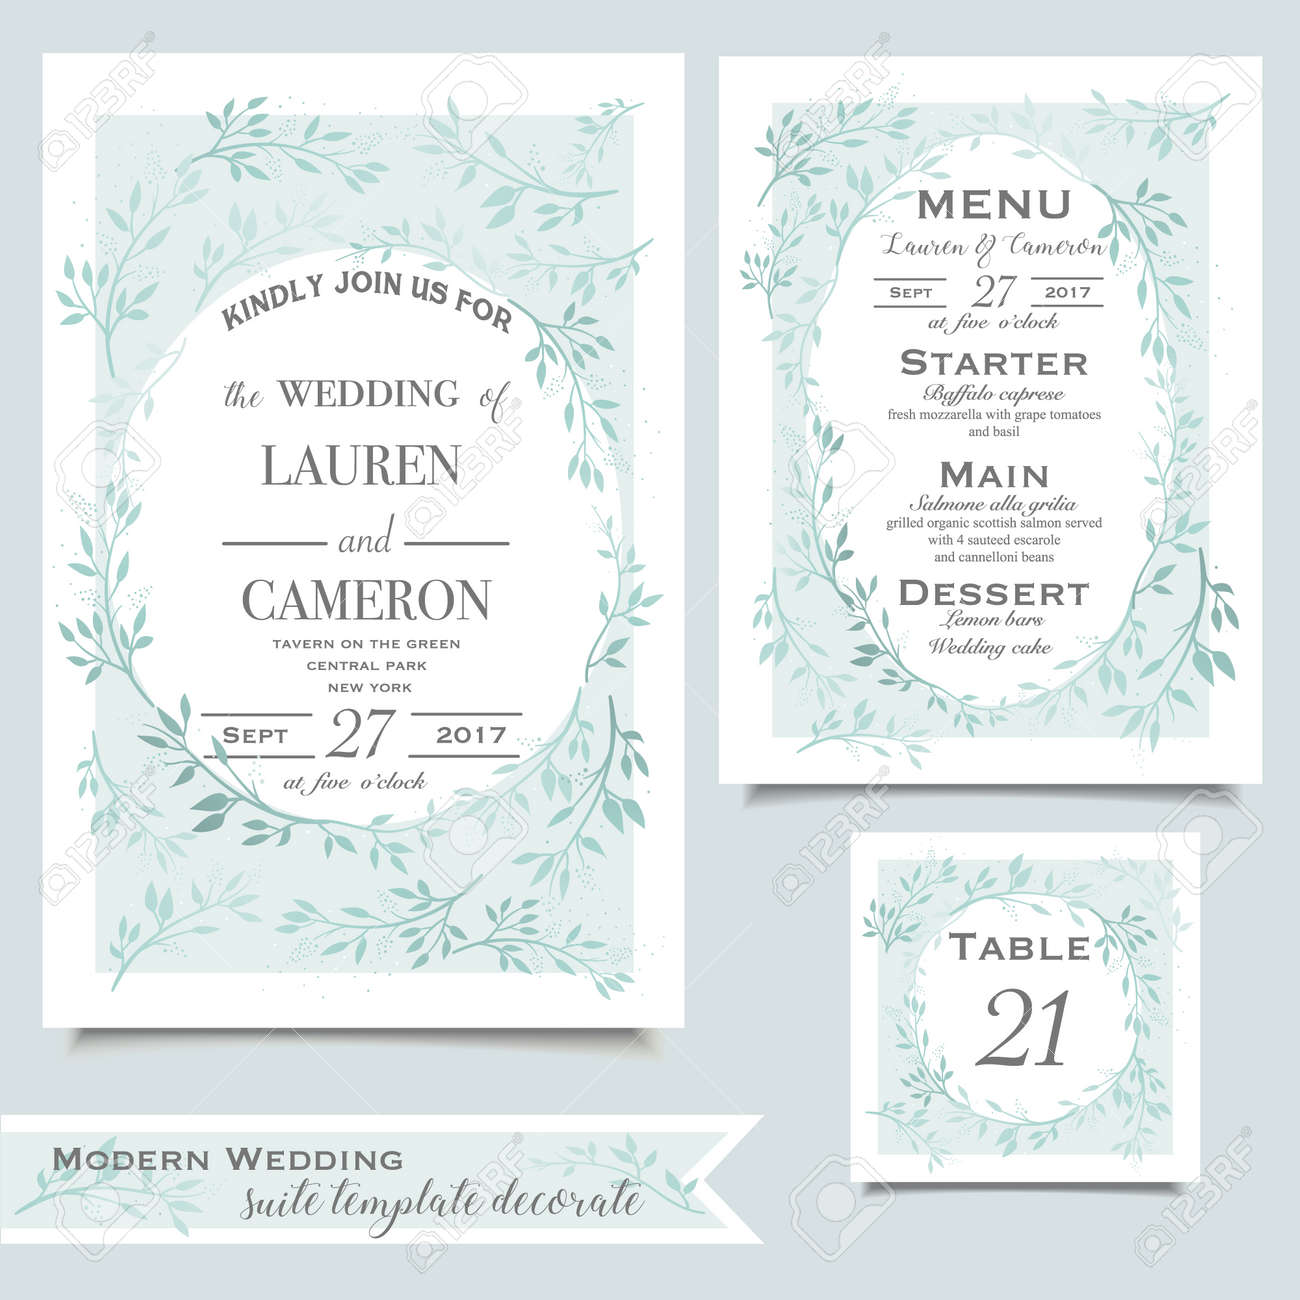 Mint Wedding Invitation Card With Floral Ornament On White ...